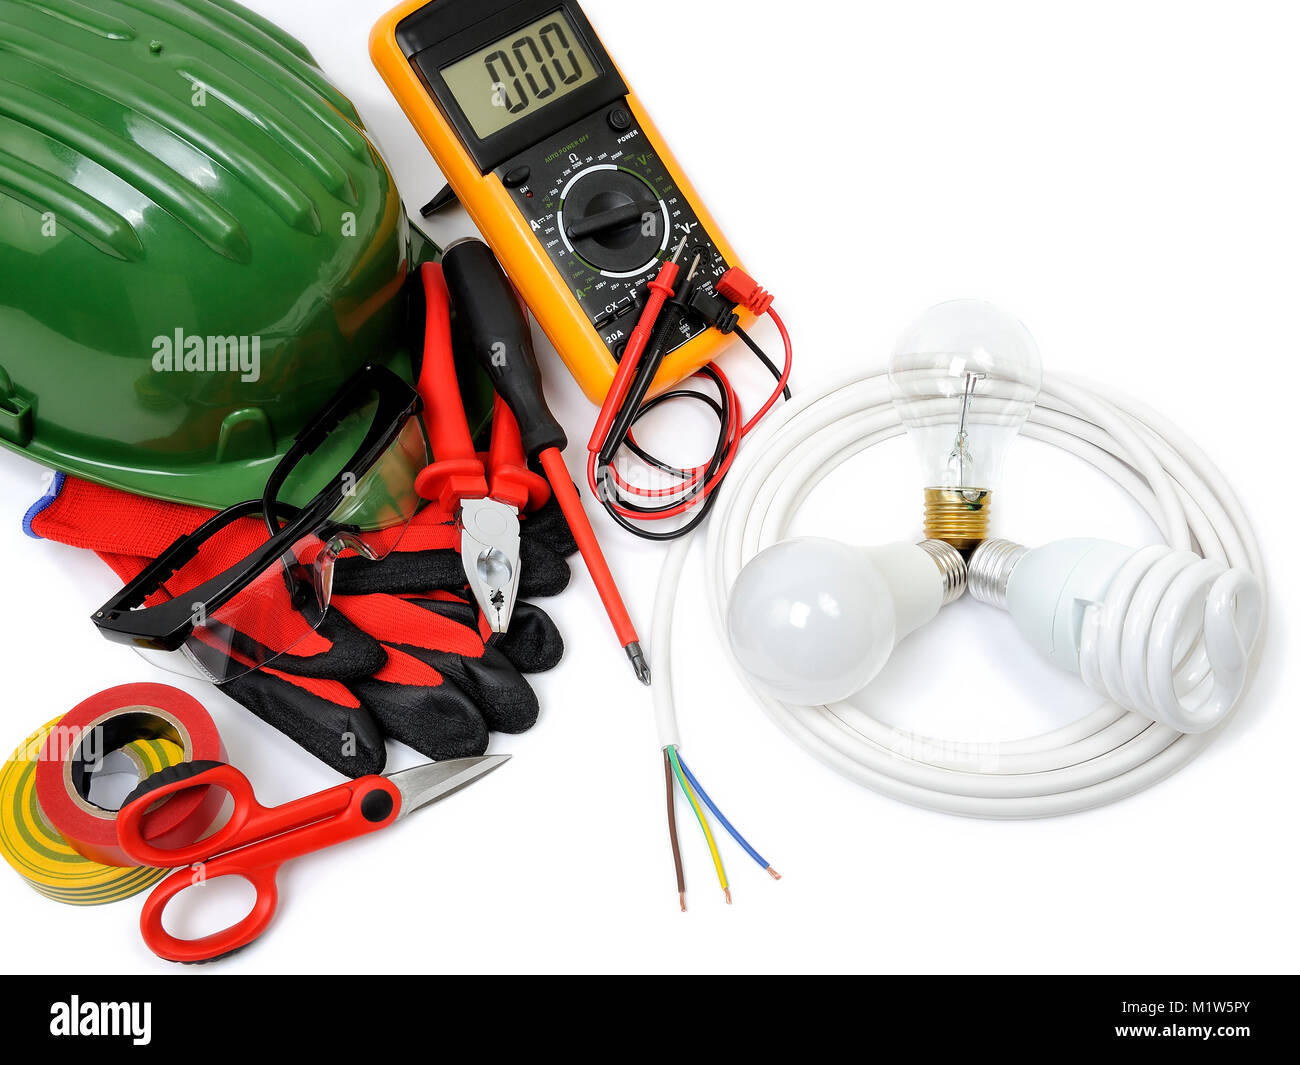 Safety Equipment Work Tools And Components For A Residential Stock Electric Wiring Electrical Installation Photographed On White Background